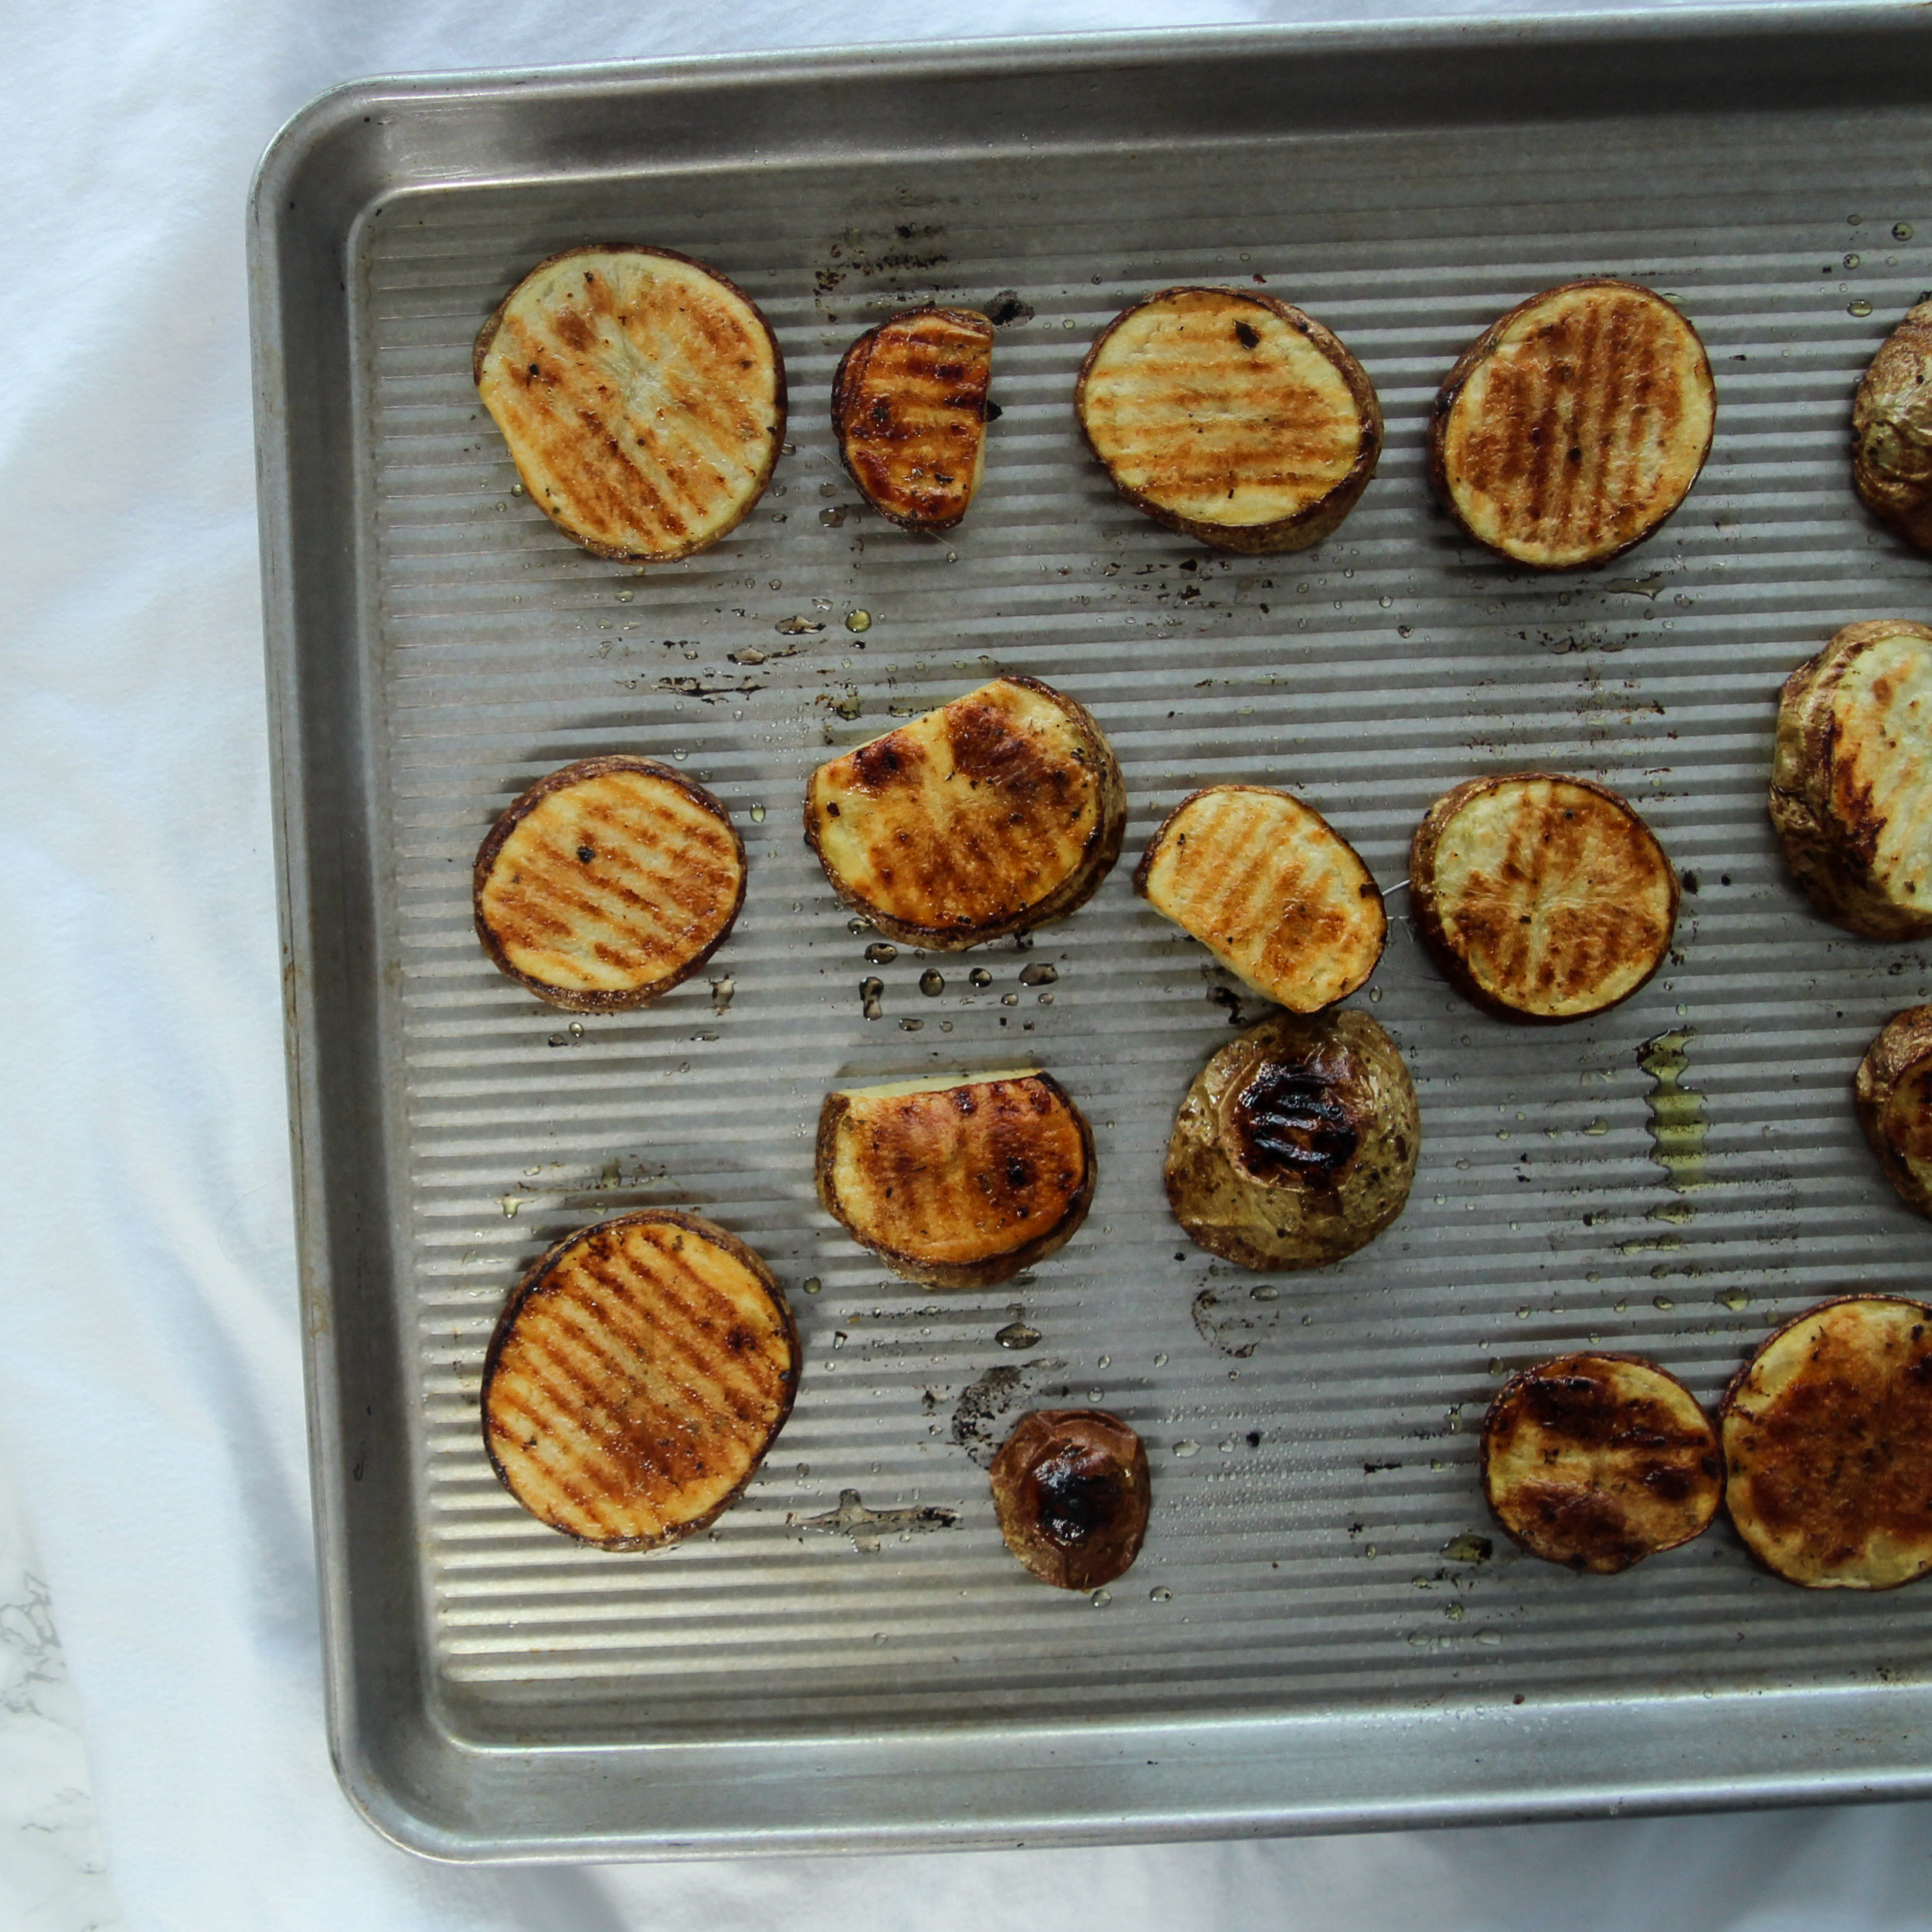 Garlic Herb Roasted Potatoes-process picture, step by step.jpg